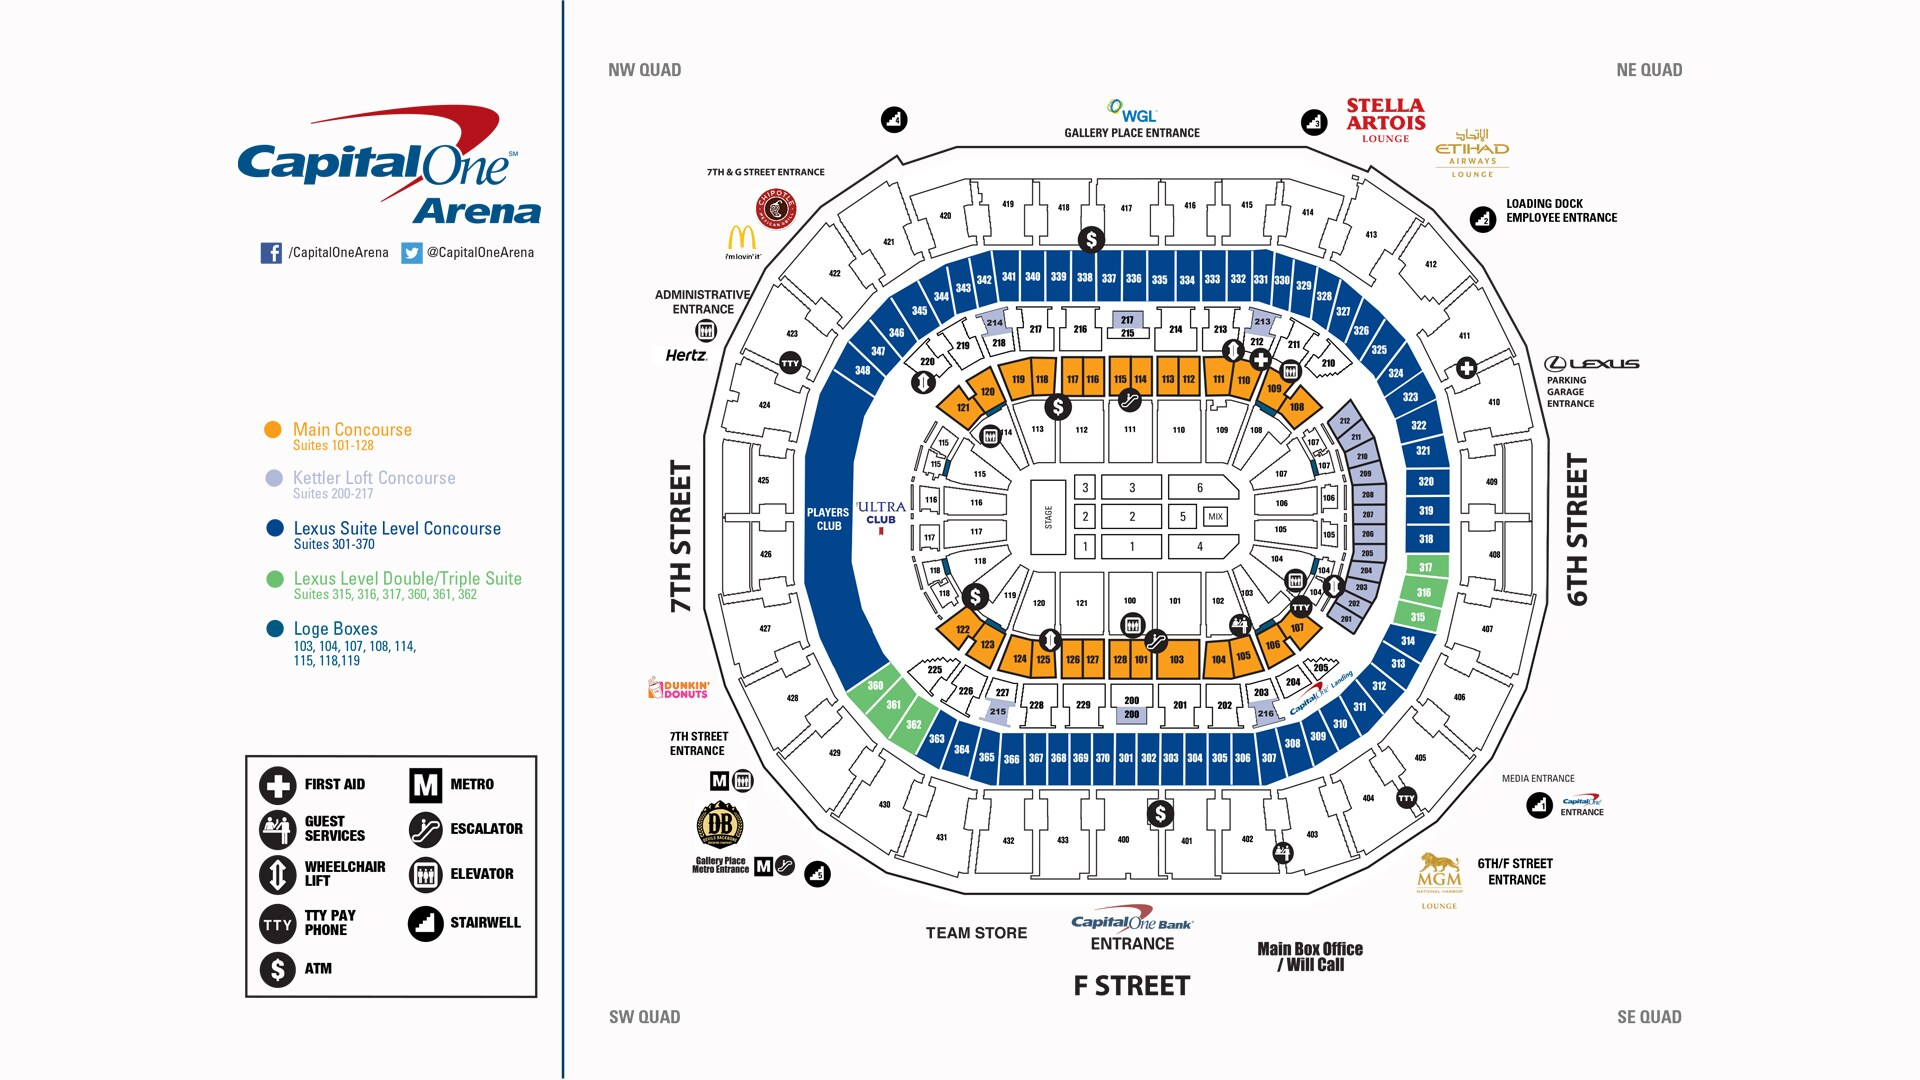 Capital One Arena Seating Charts Capital One Arena